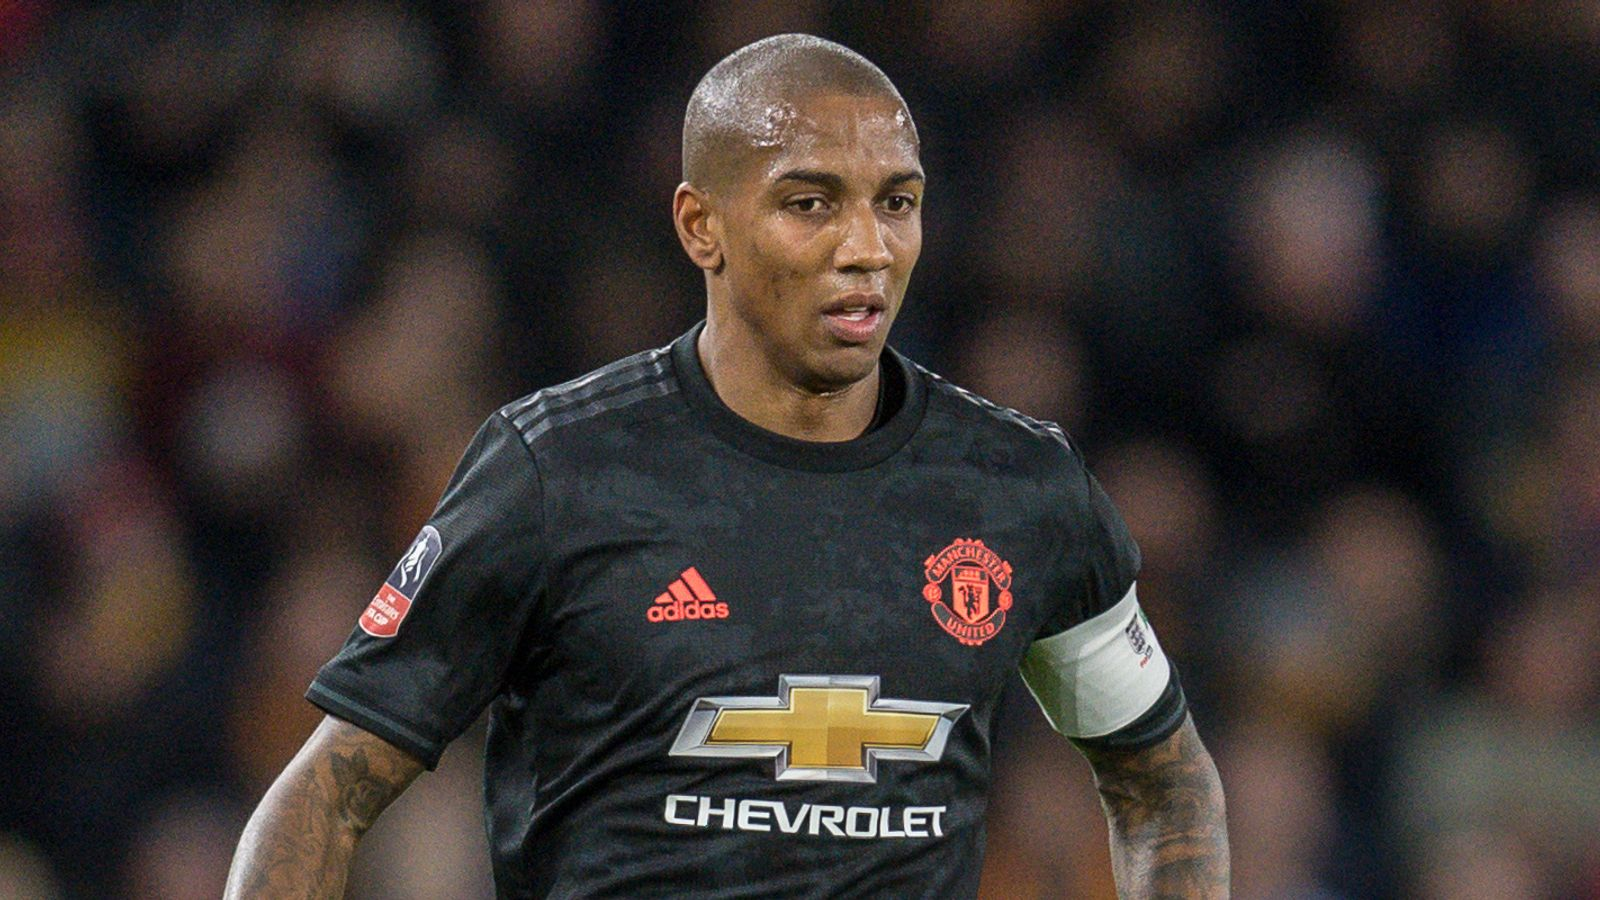 Ashley Young: Inter signs Manchester United defender with an initial six-month deal | Football news